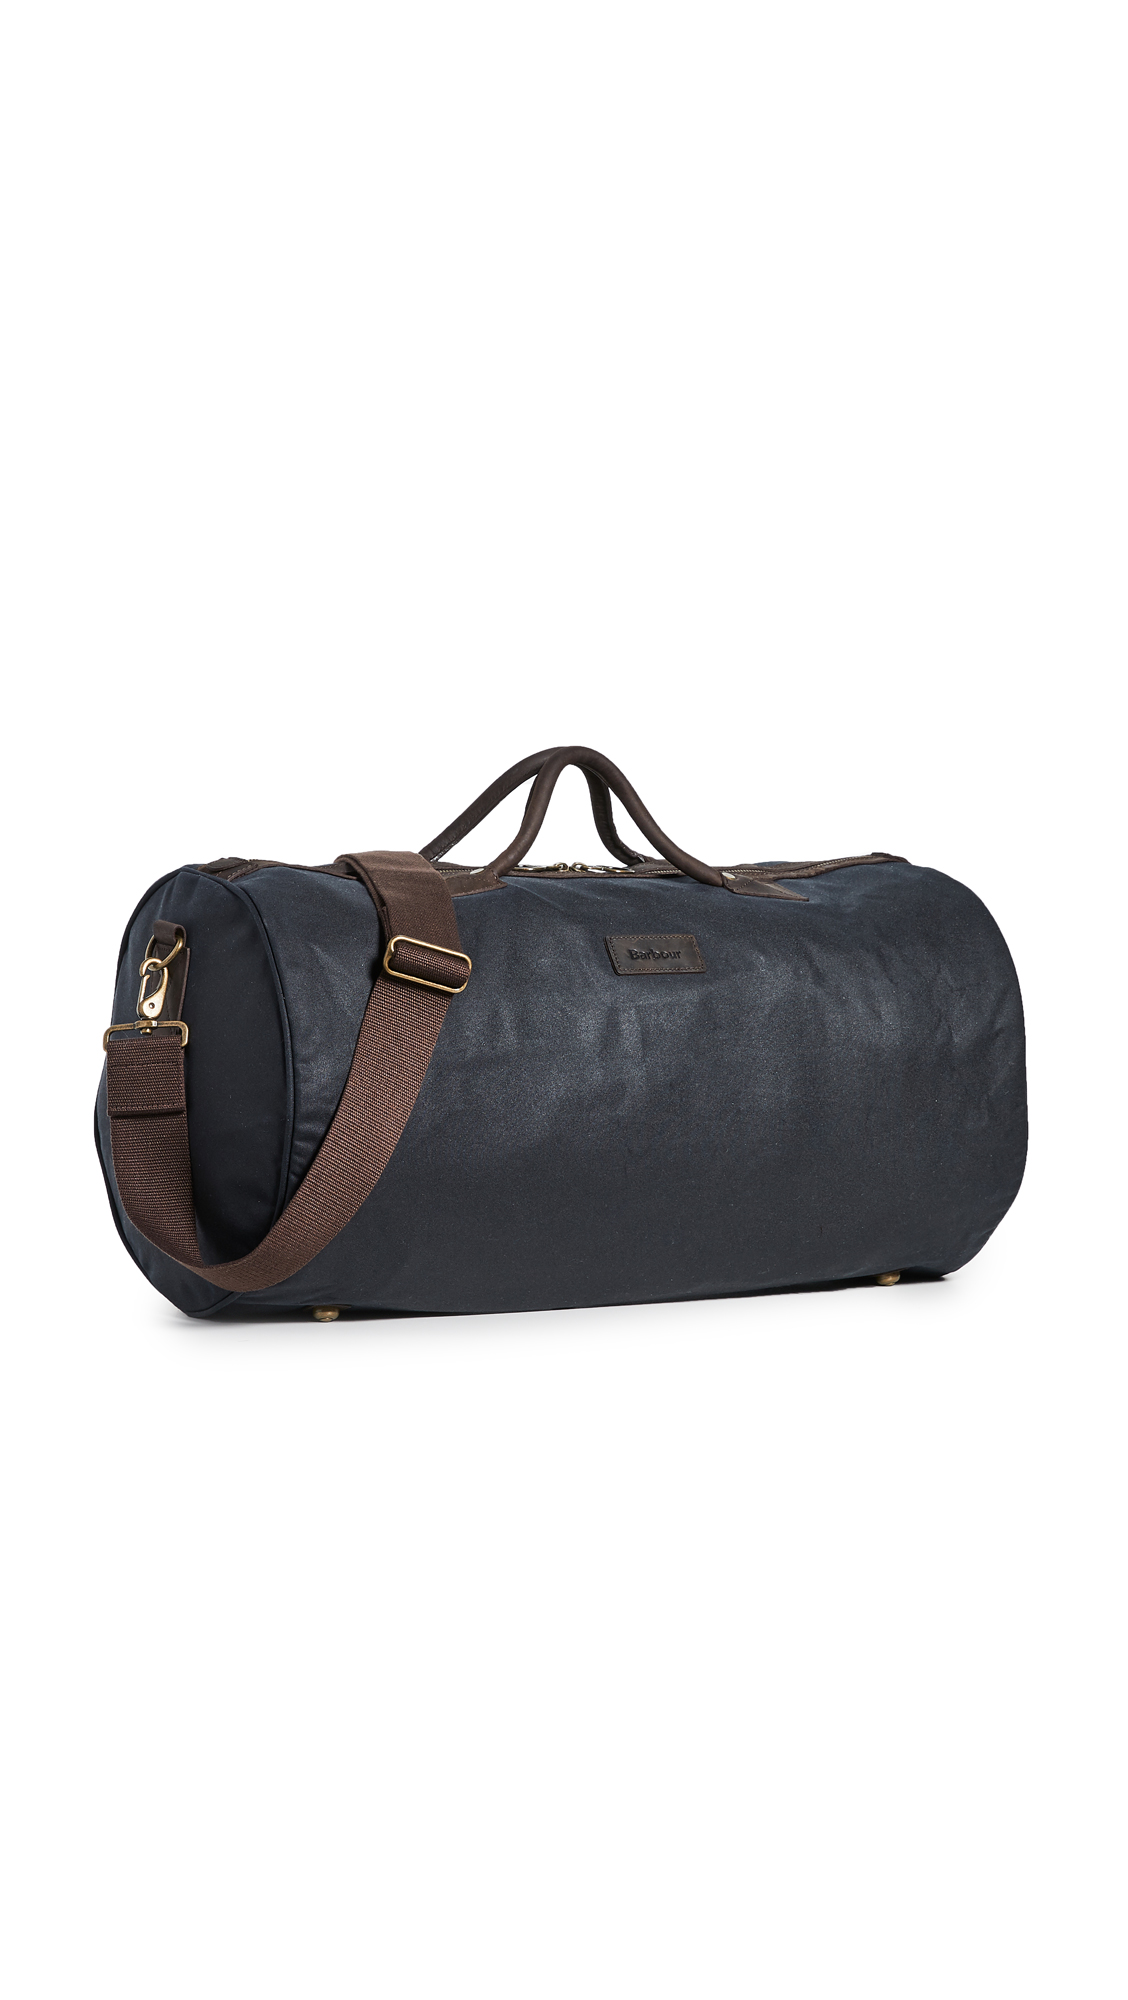 Barbour Wax Holdall Duffel Bag In Navy